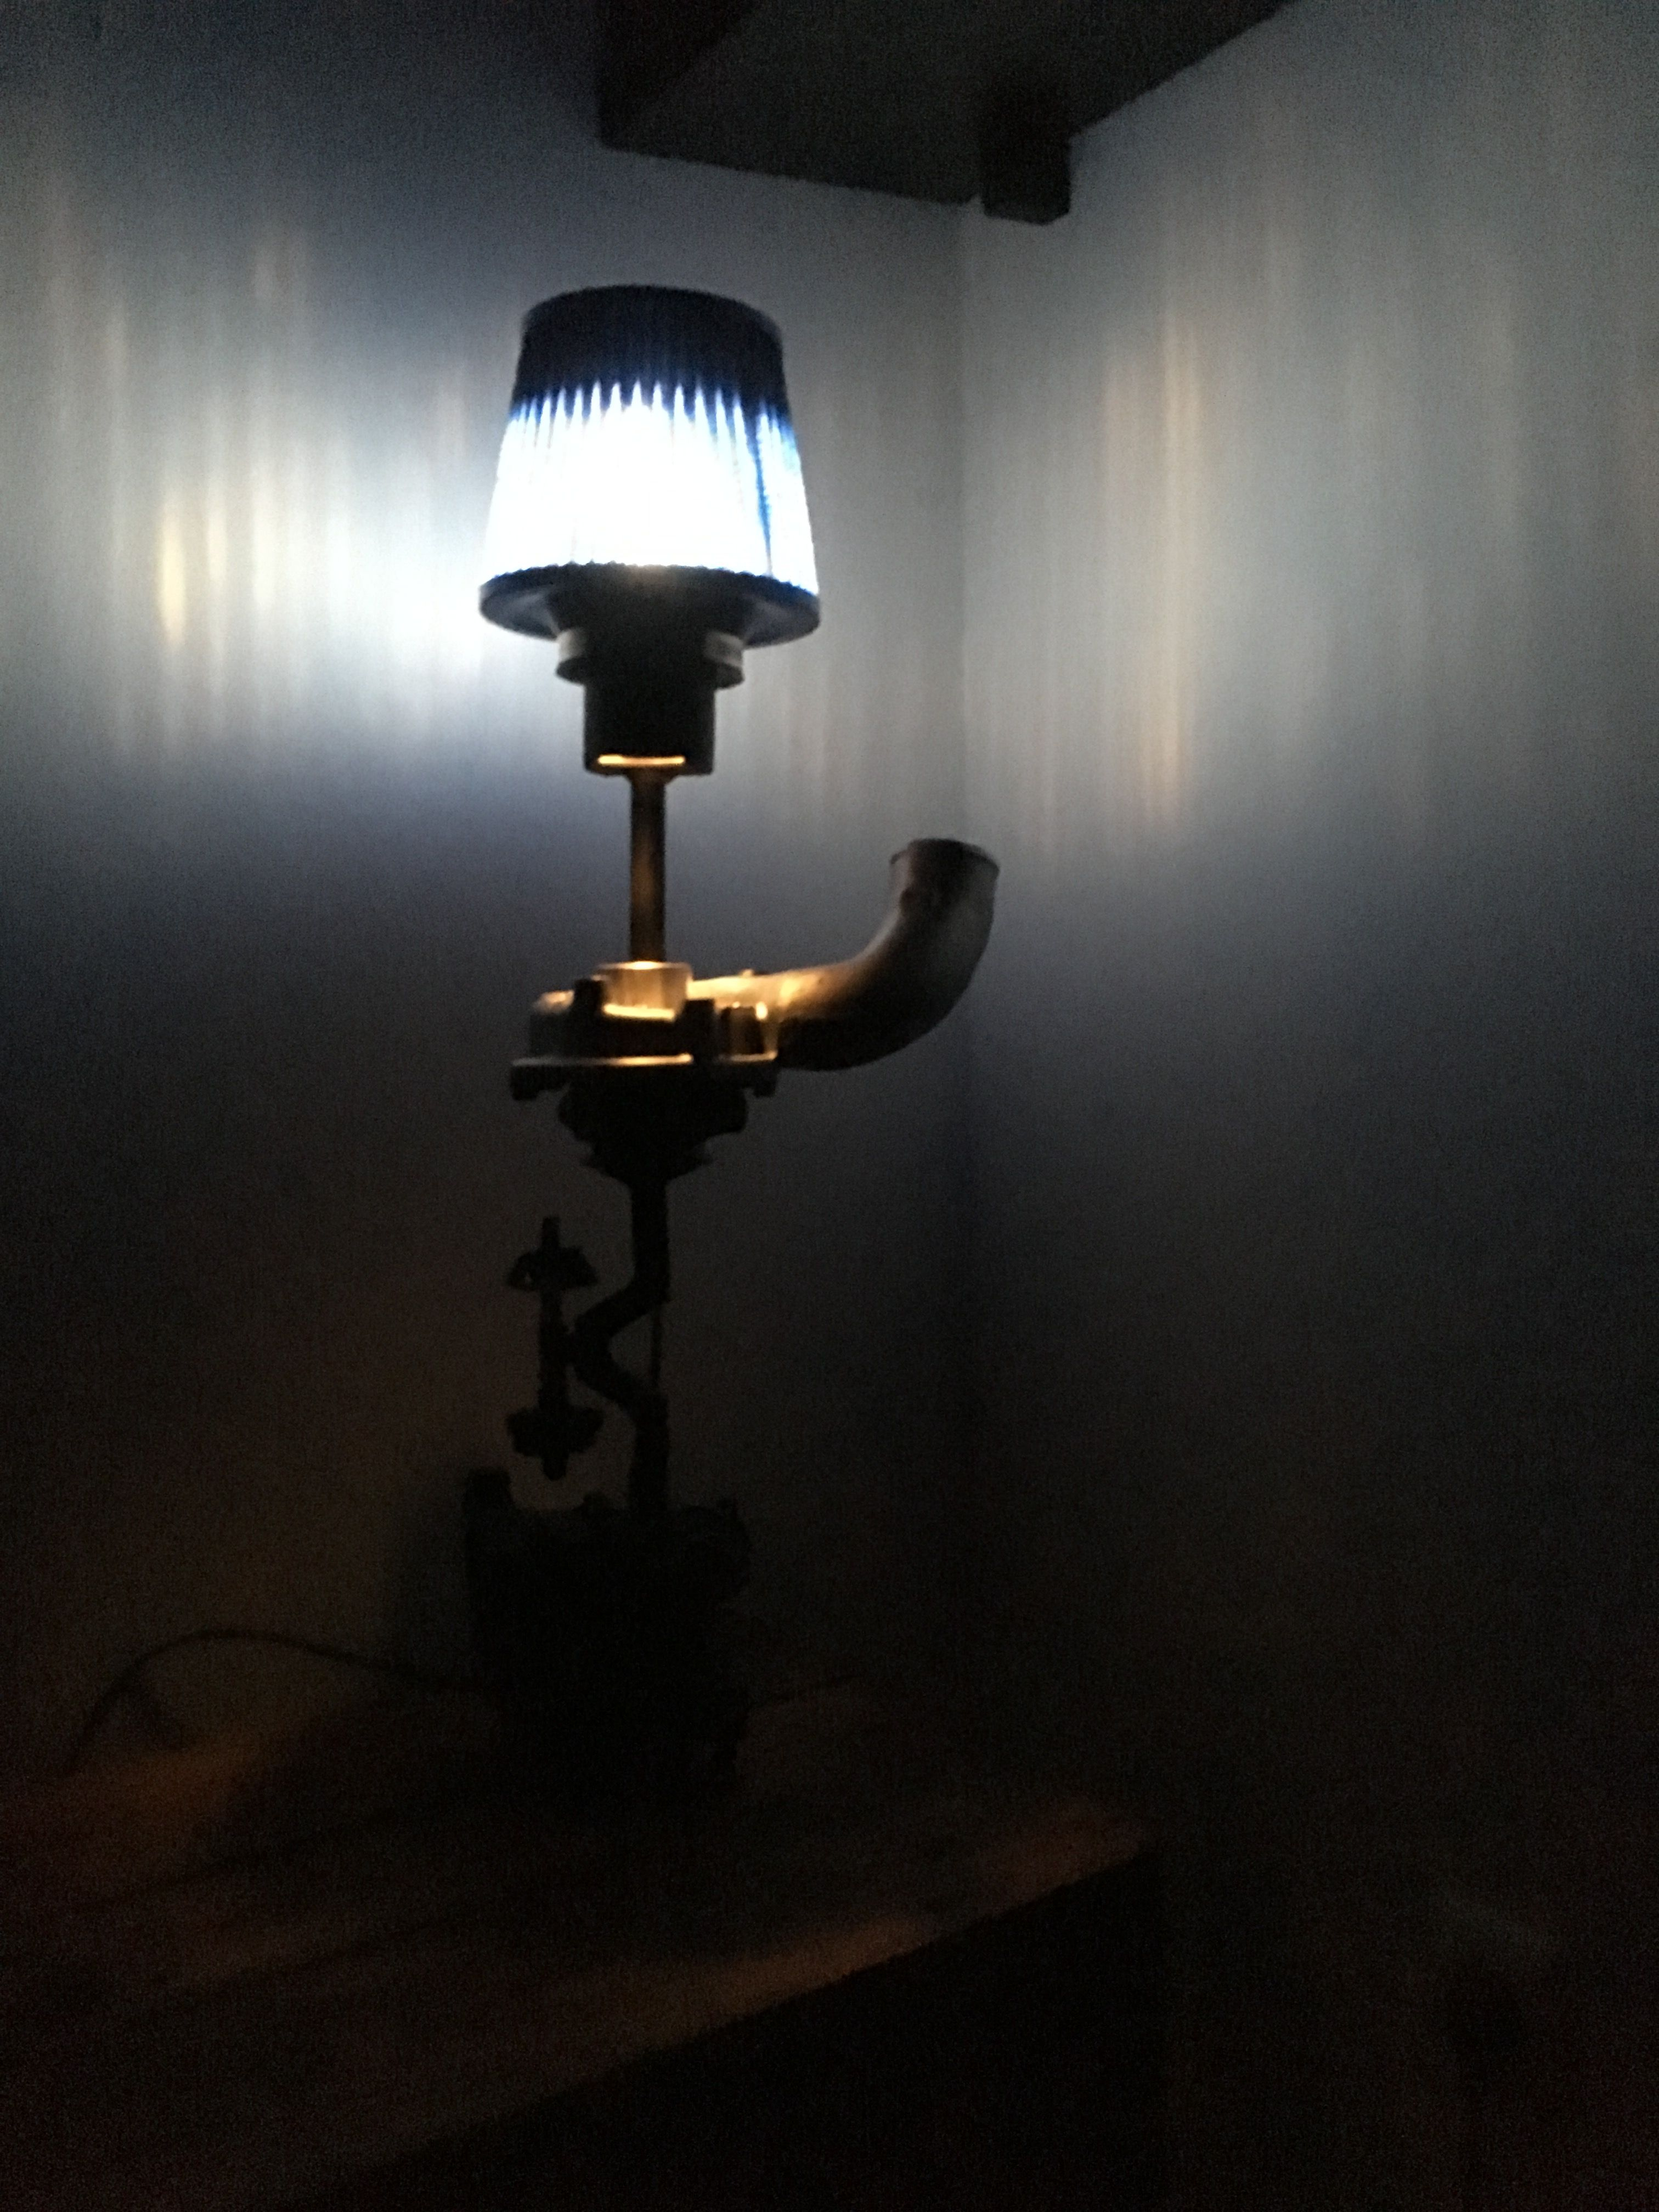 Turbocharger Industrial Table Lamp made with car parts for your inspiration Turbolampe Lampe